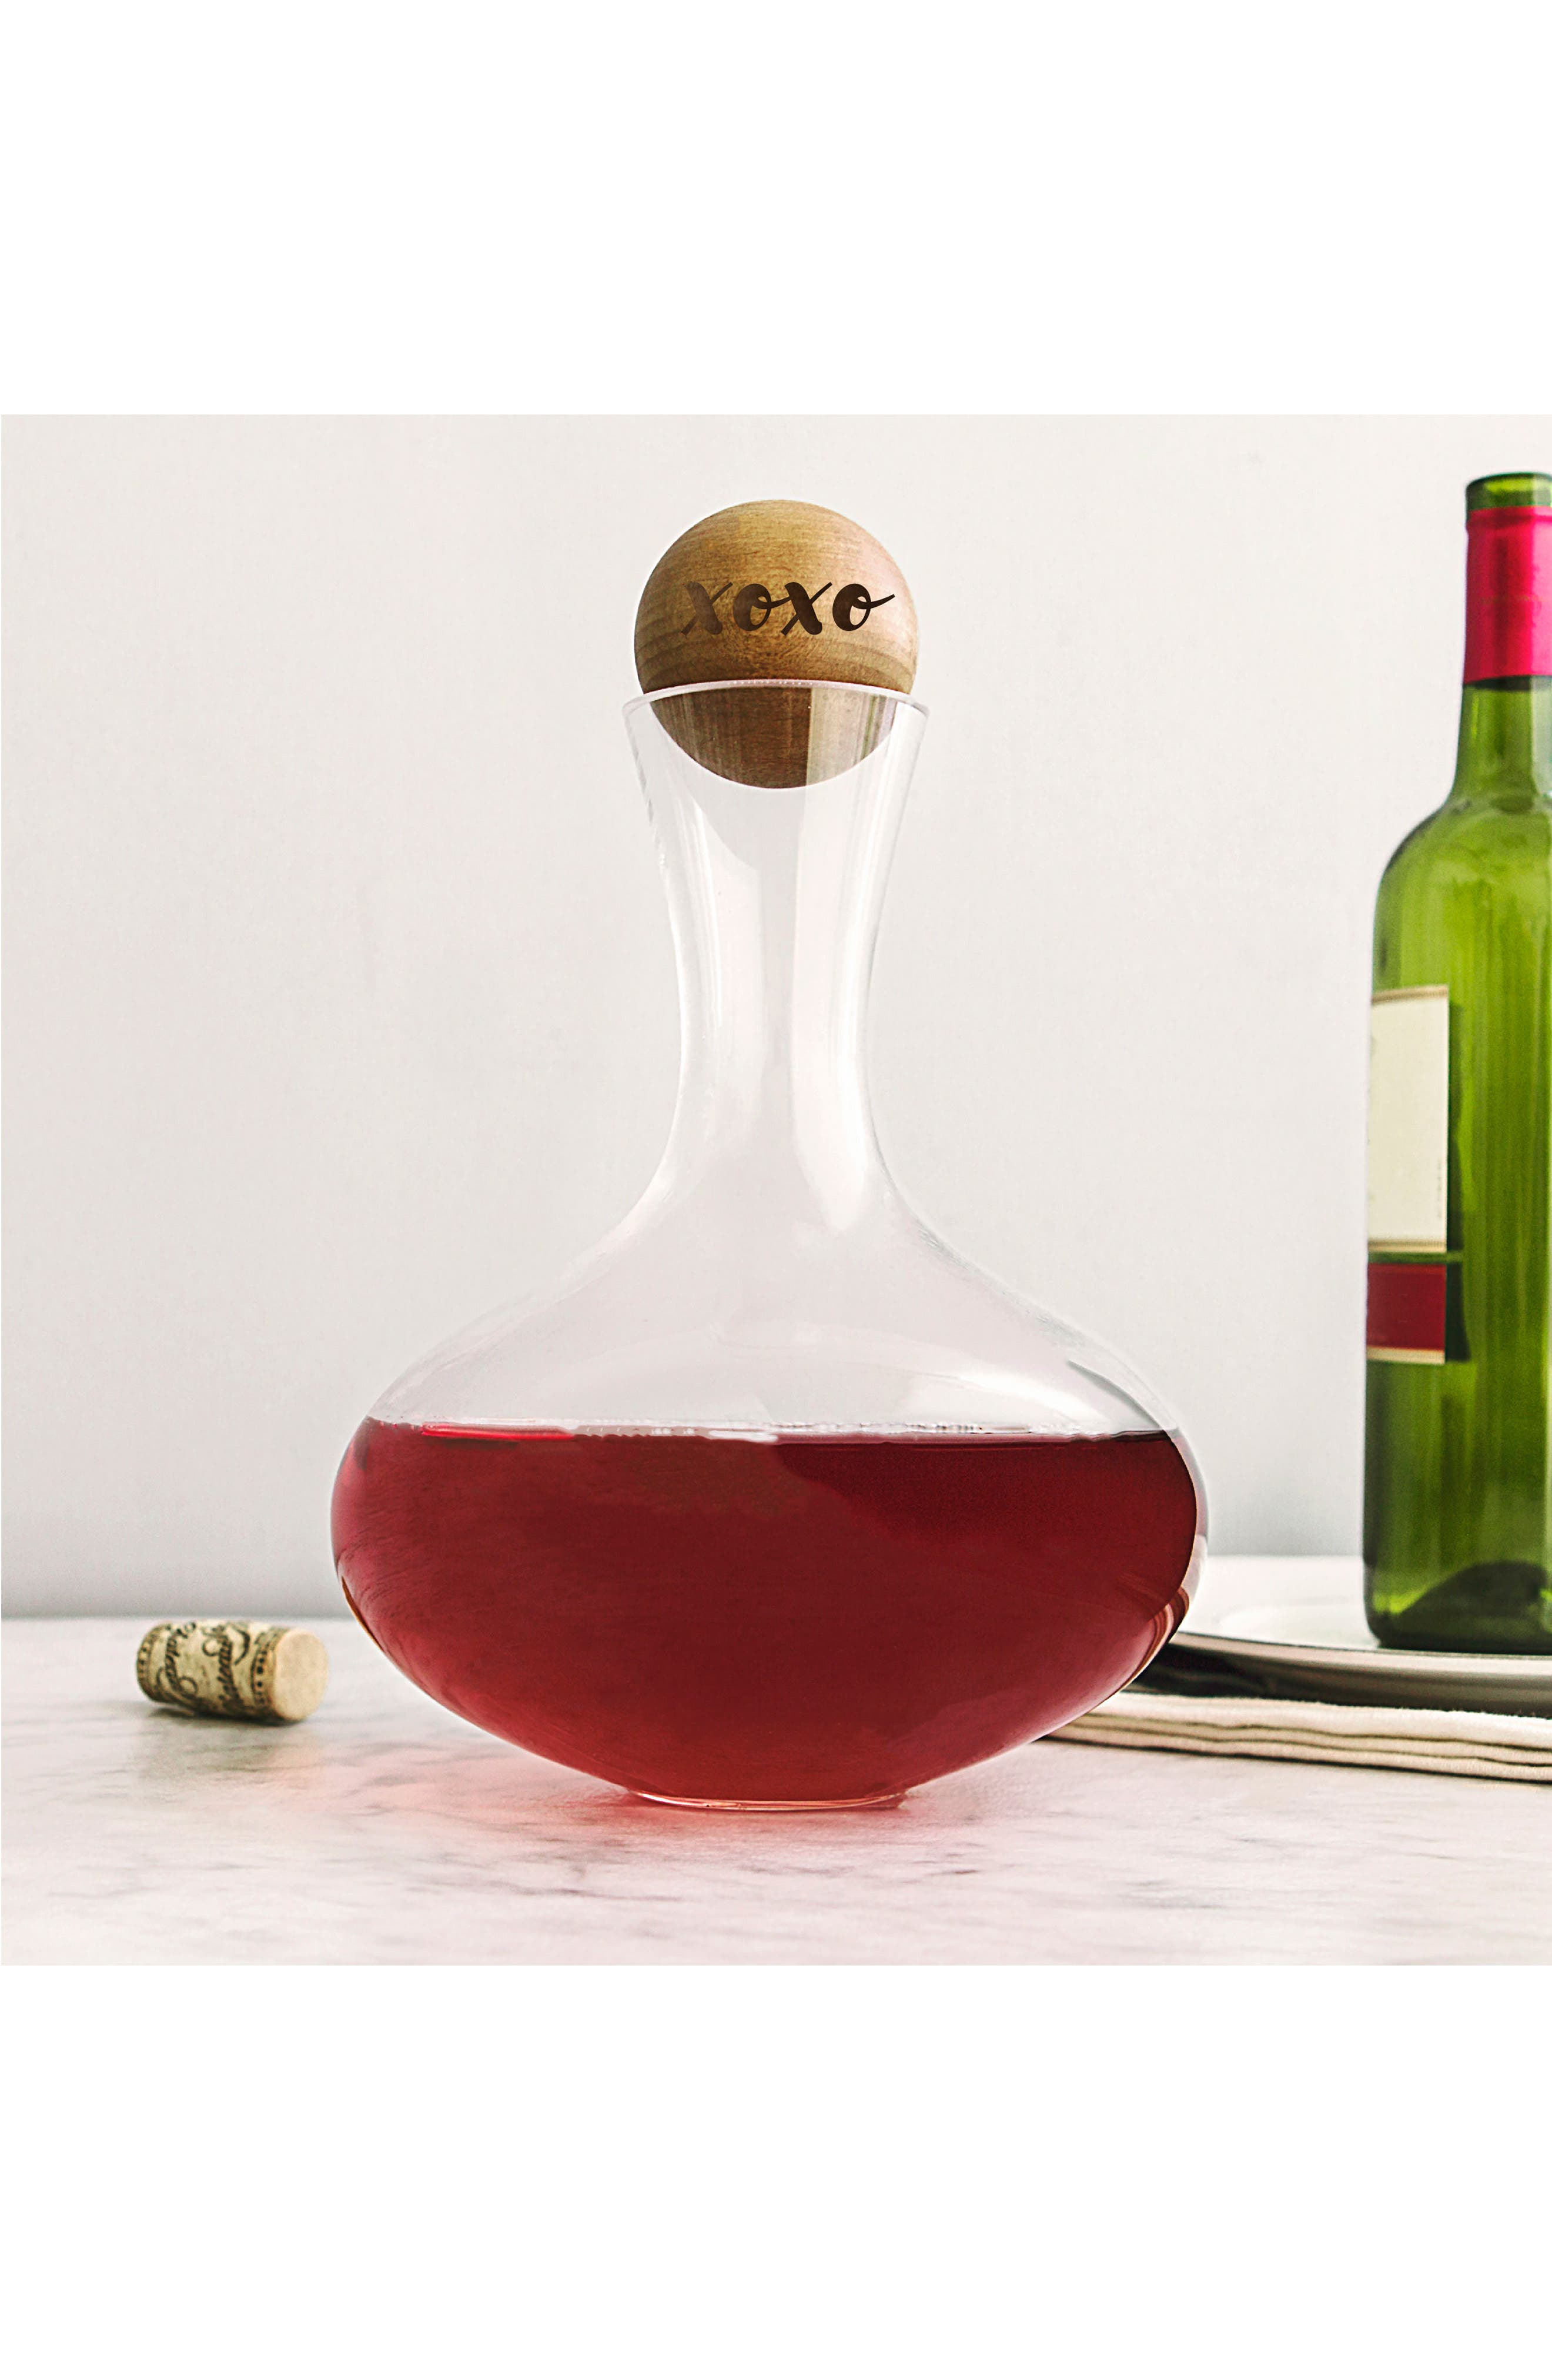 Cathy's Concept XOXO Wine Decanter,                             Main thumbnail 1, color,                             Clear